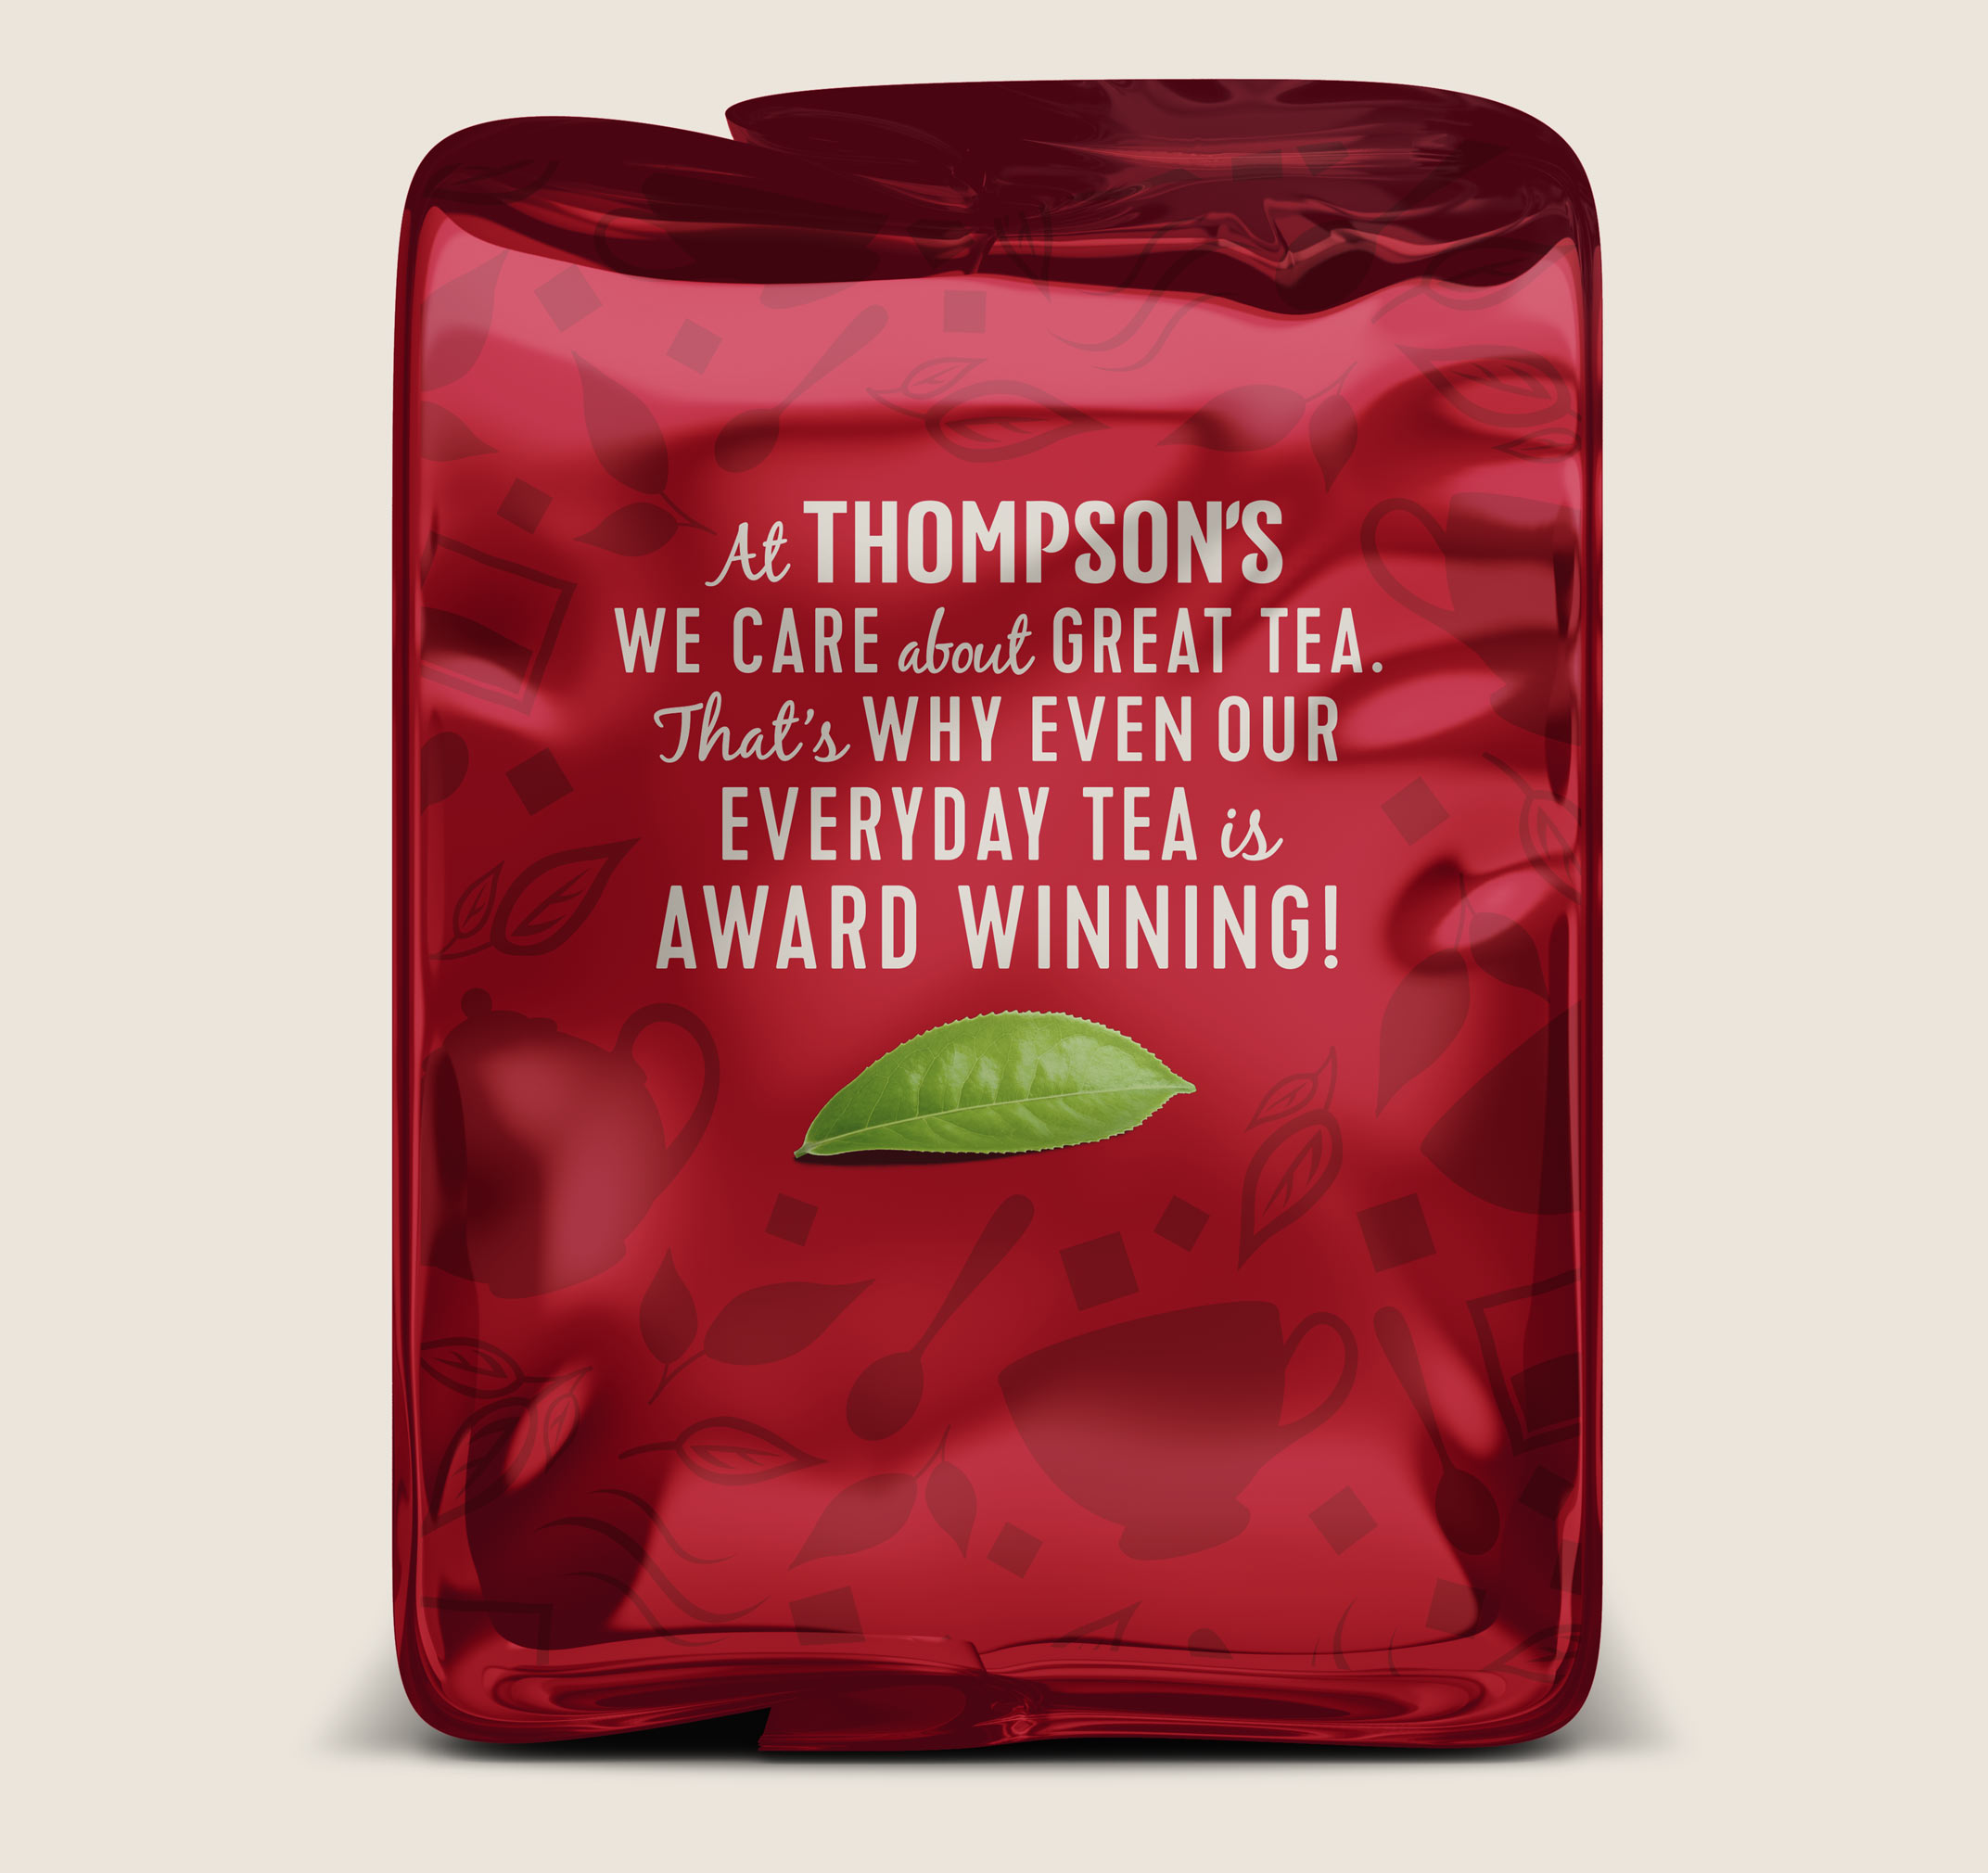 Thompson's Packaging